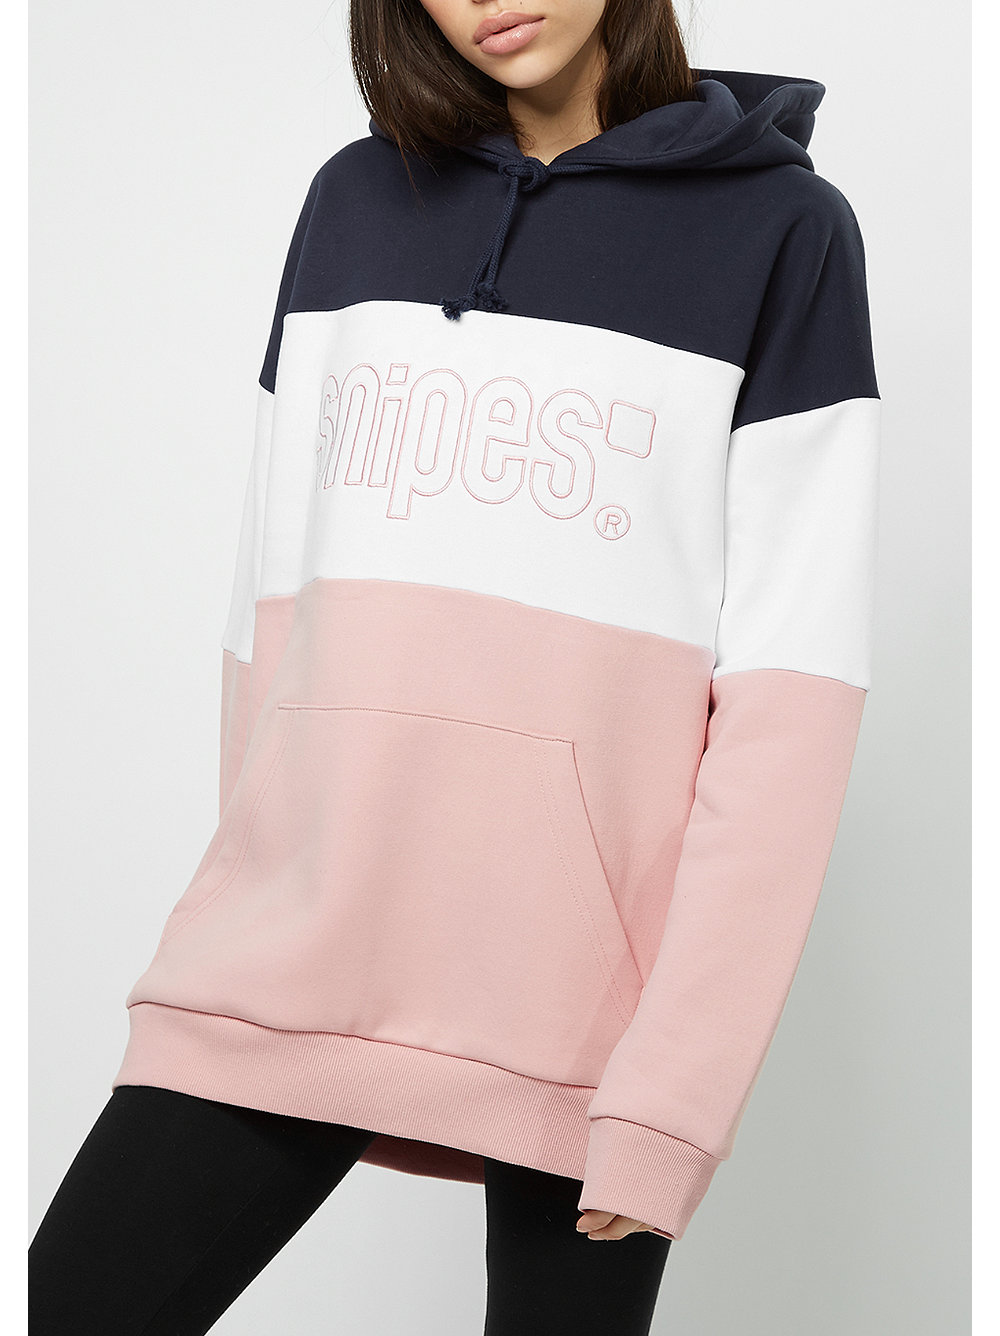 das hooded sweatshirt oversized pink im snipes onlineshop. Black Bedroom Furniture Sets. Home Design Ideas